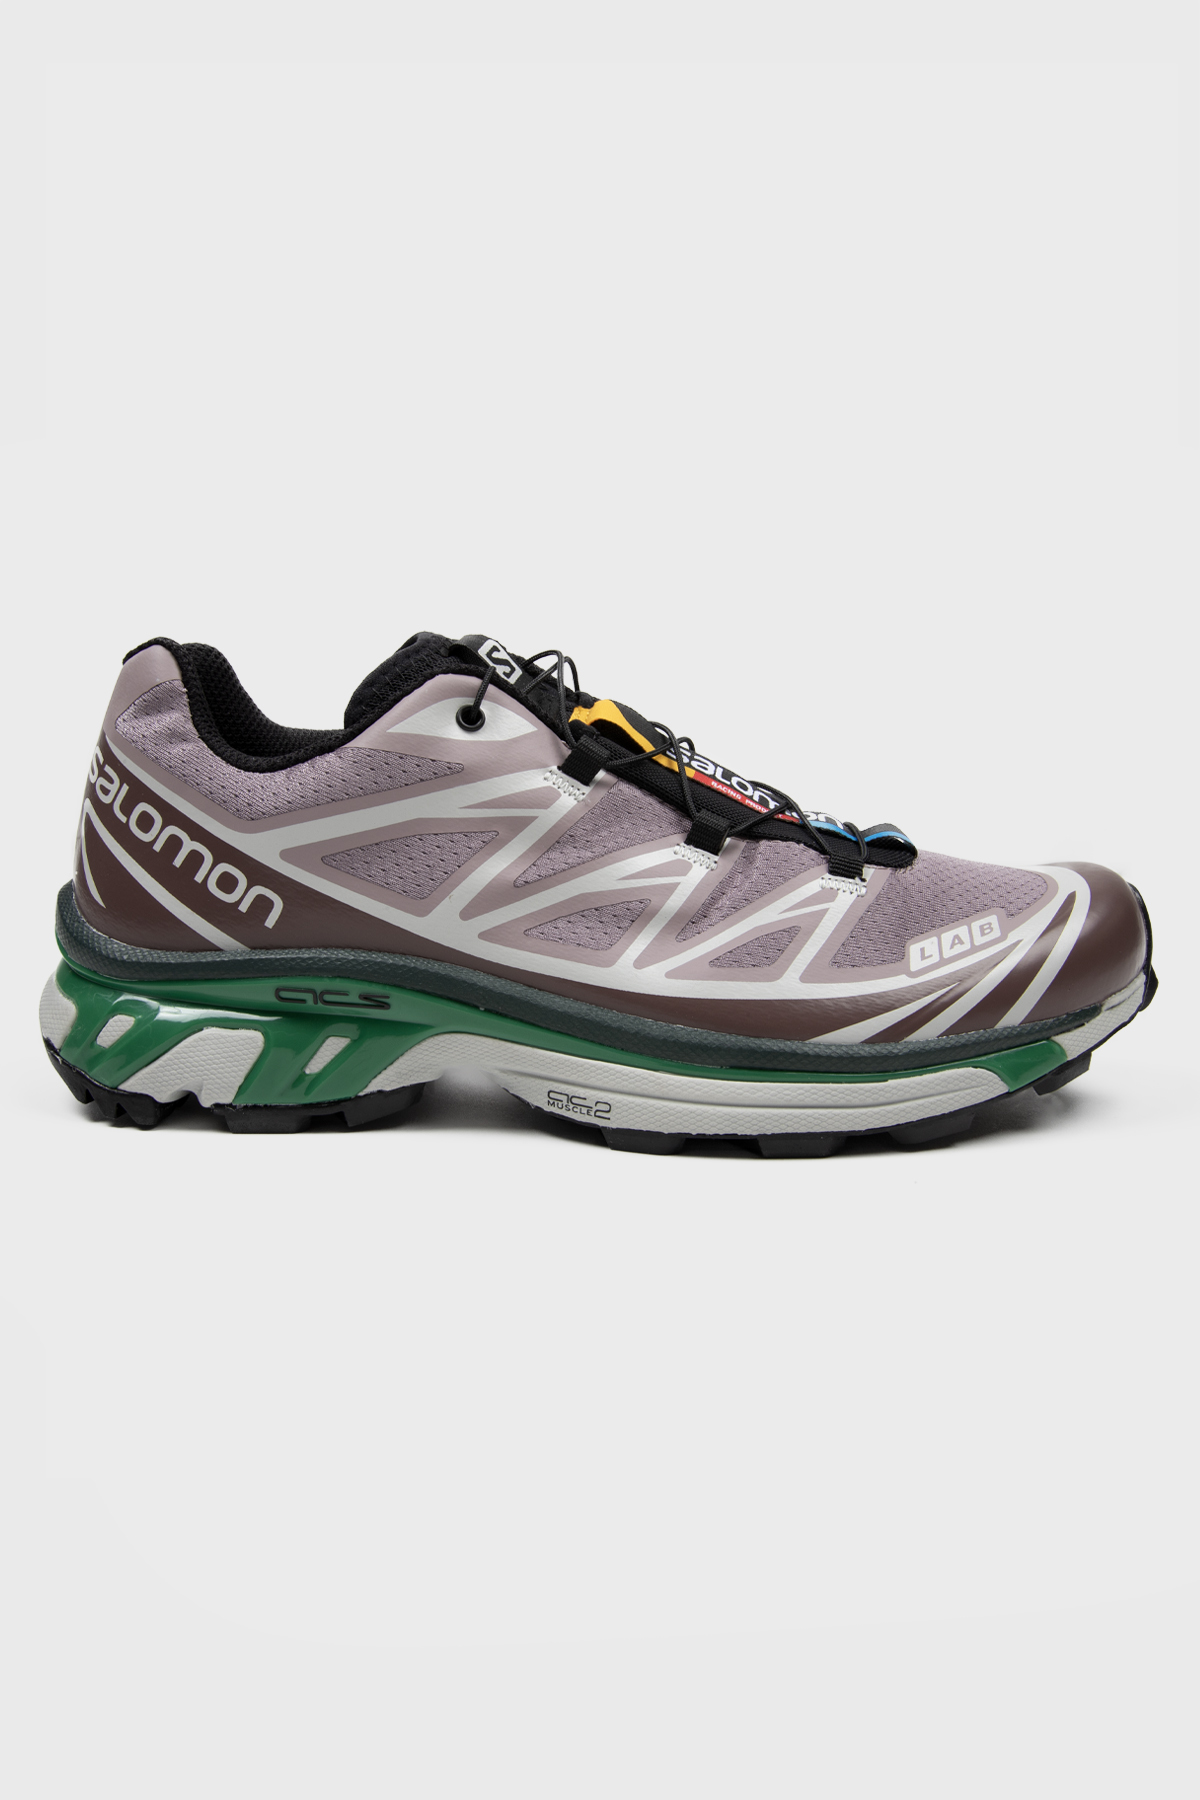 Salomon - S/LAB XT-6 ADV - Quail Peppercorn Amazon